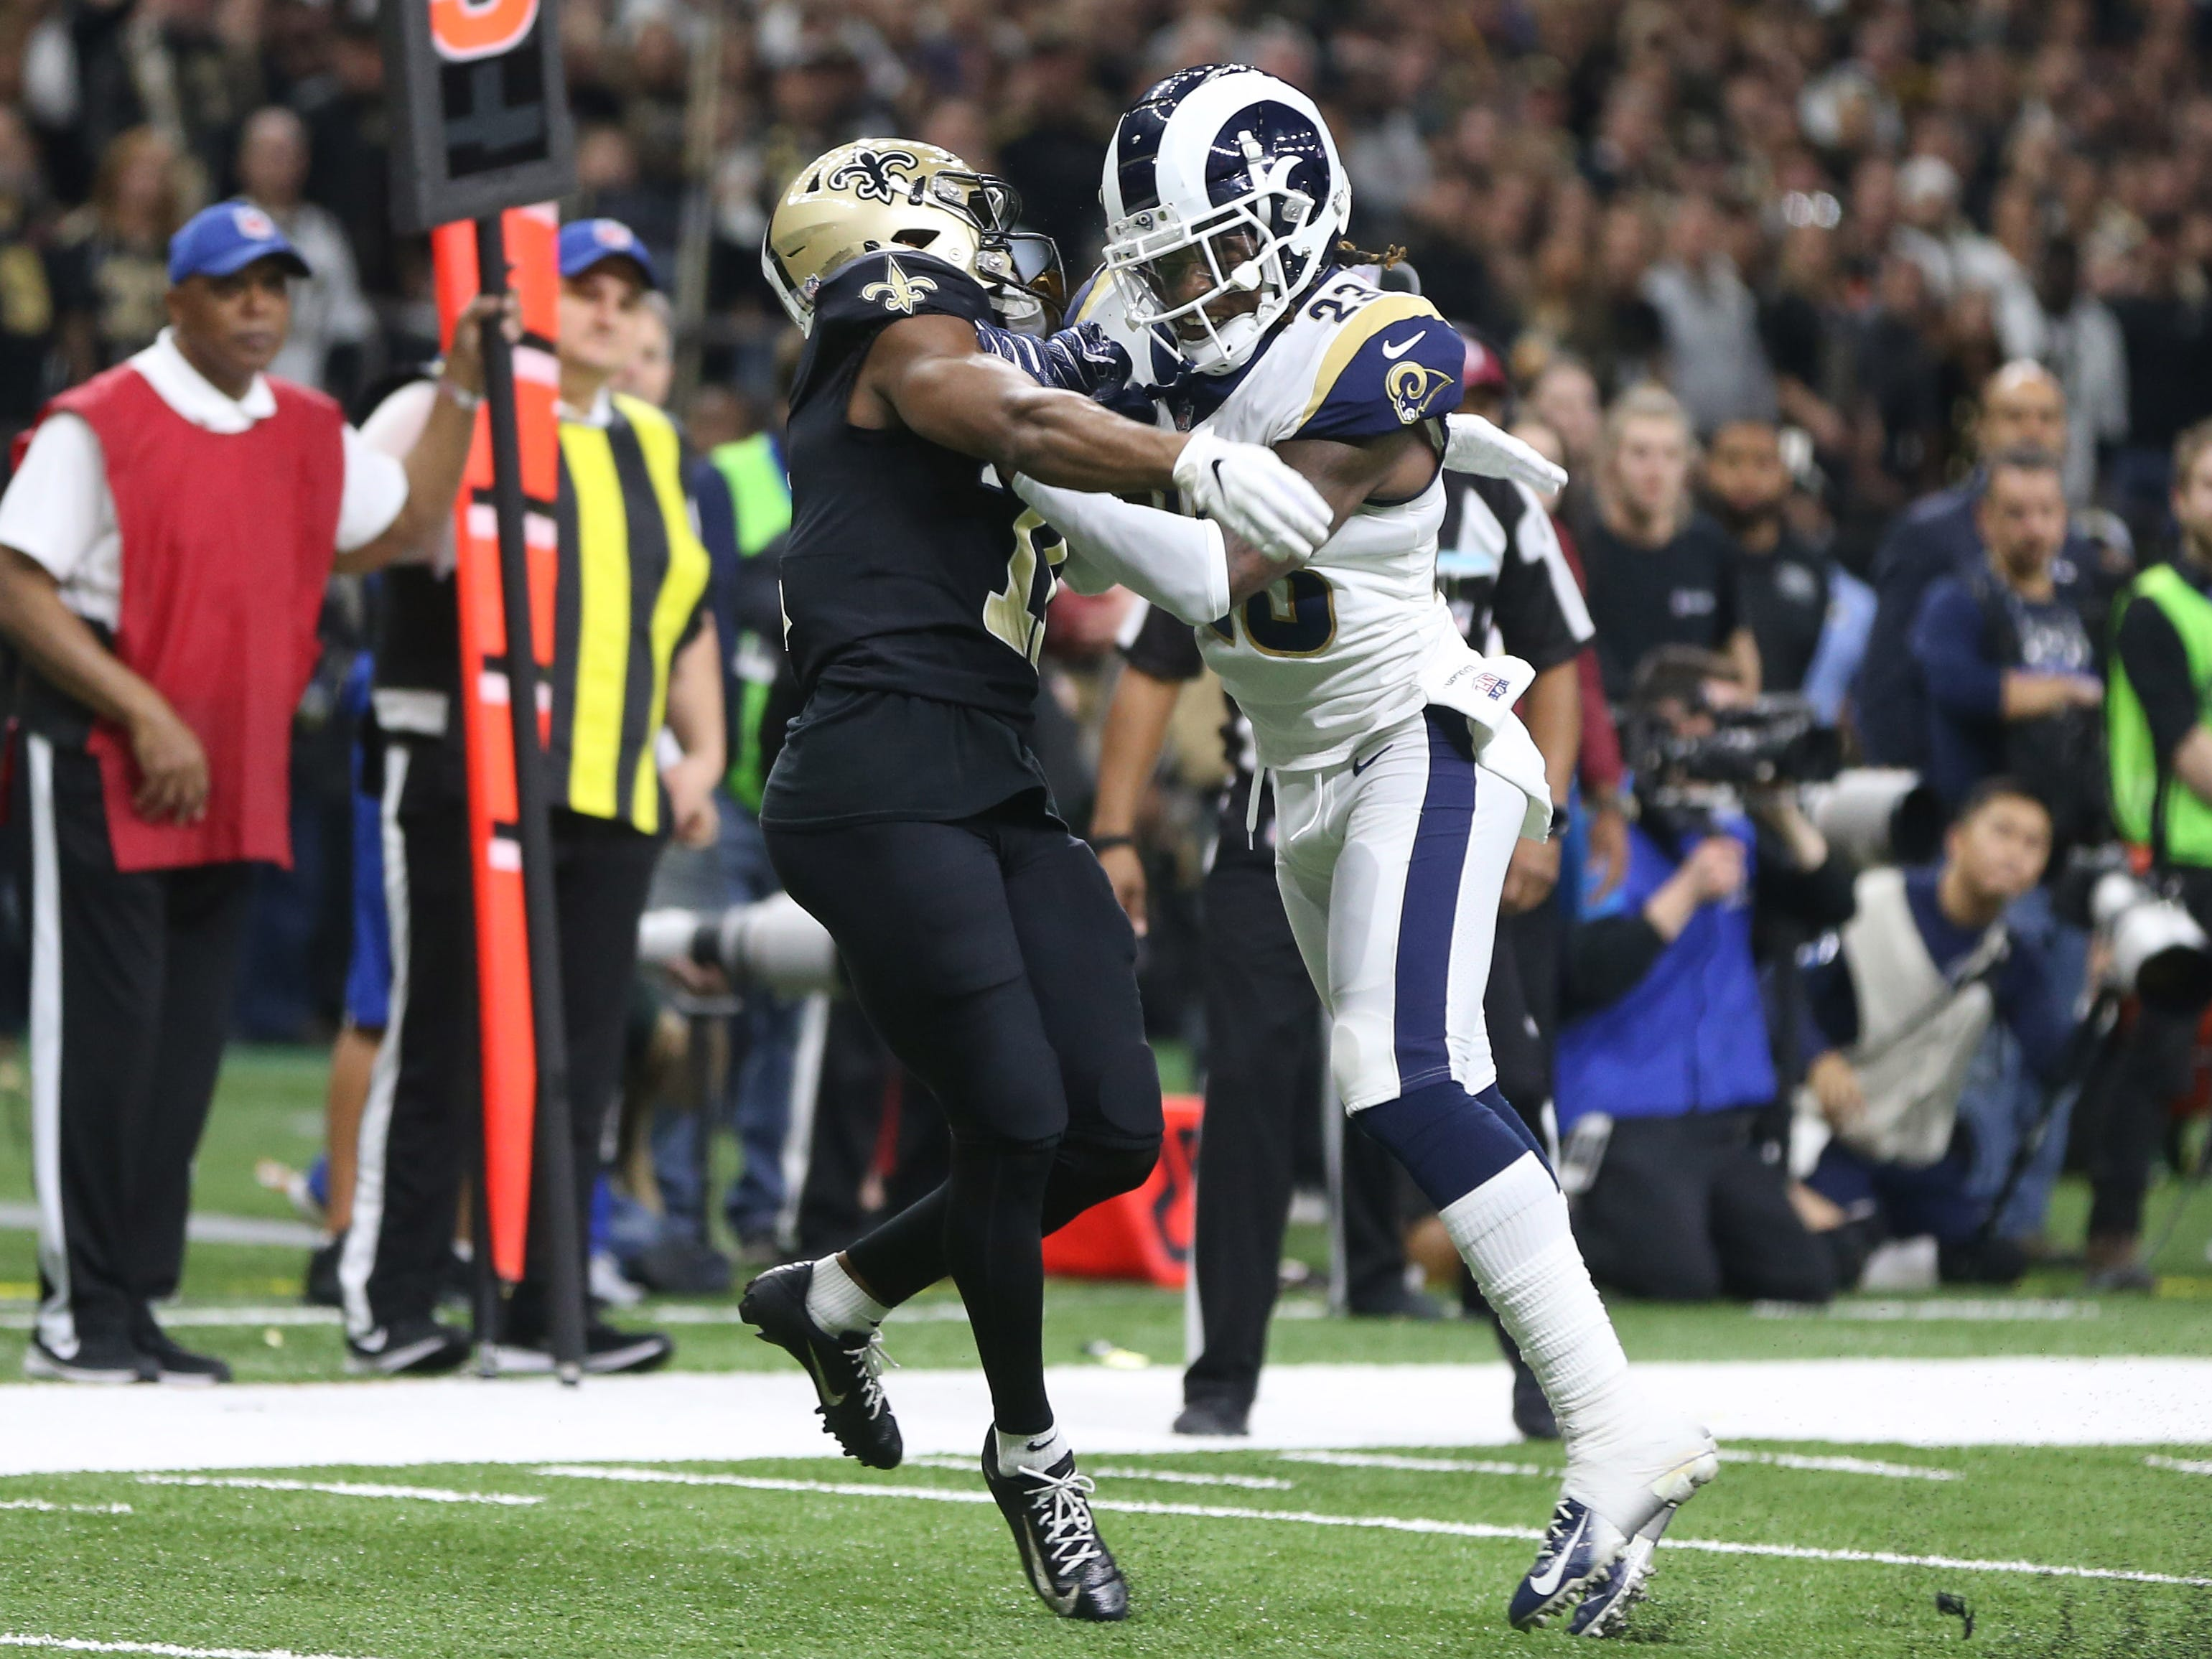 NFL will allow pass interference, including non-calls, to be reviewed on replay in major rule shift